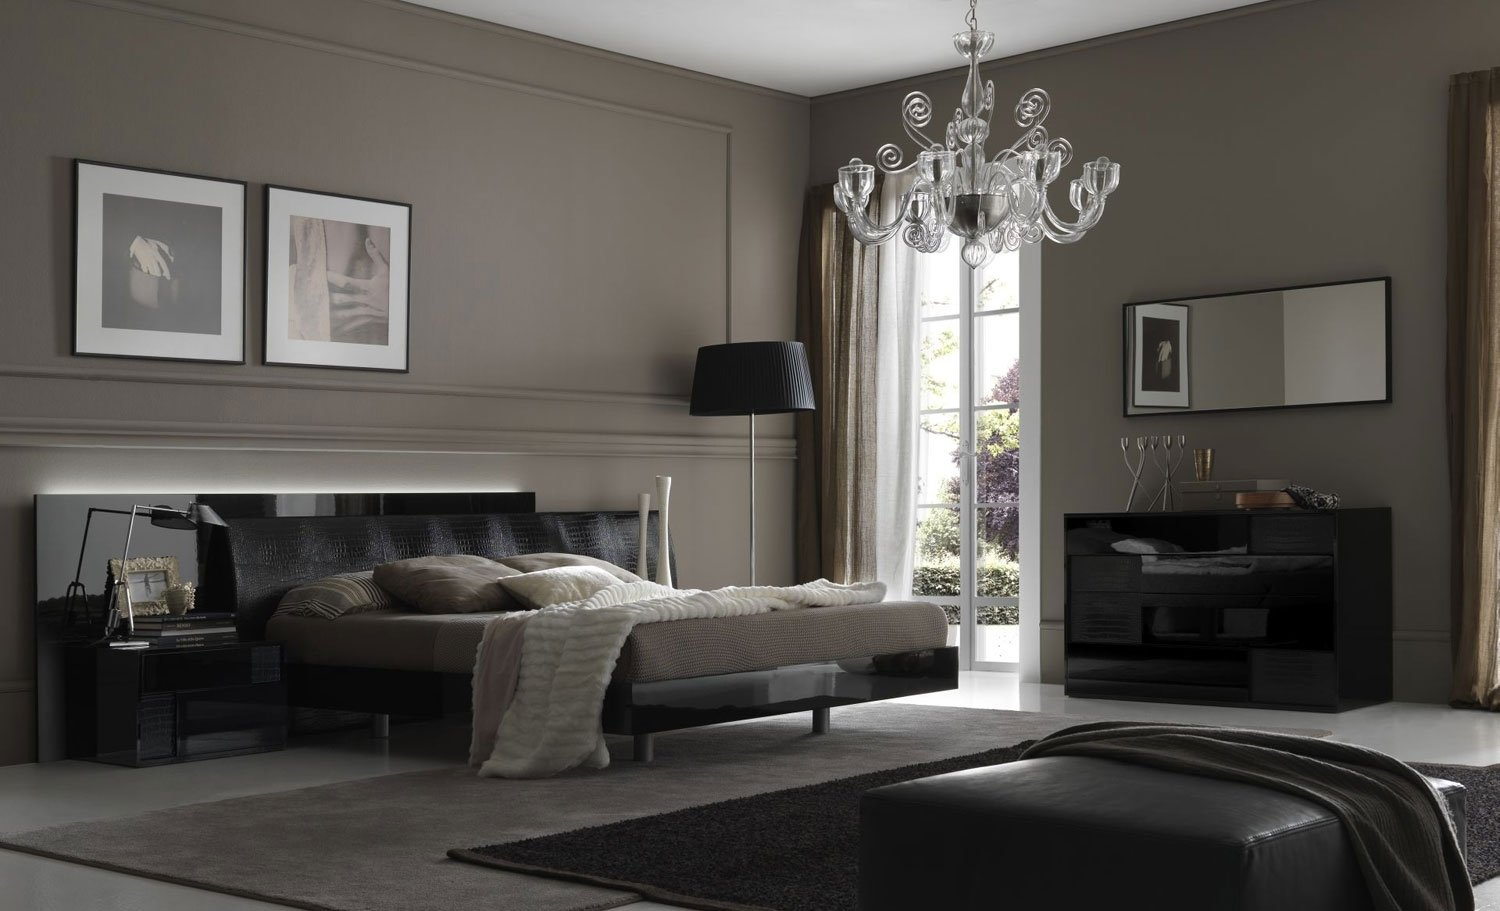 10 Attractive Bedroom Ideas With Black Furniture fortune black furniture bedroom ideas decorating www 2021